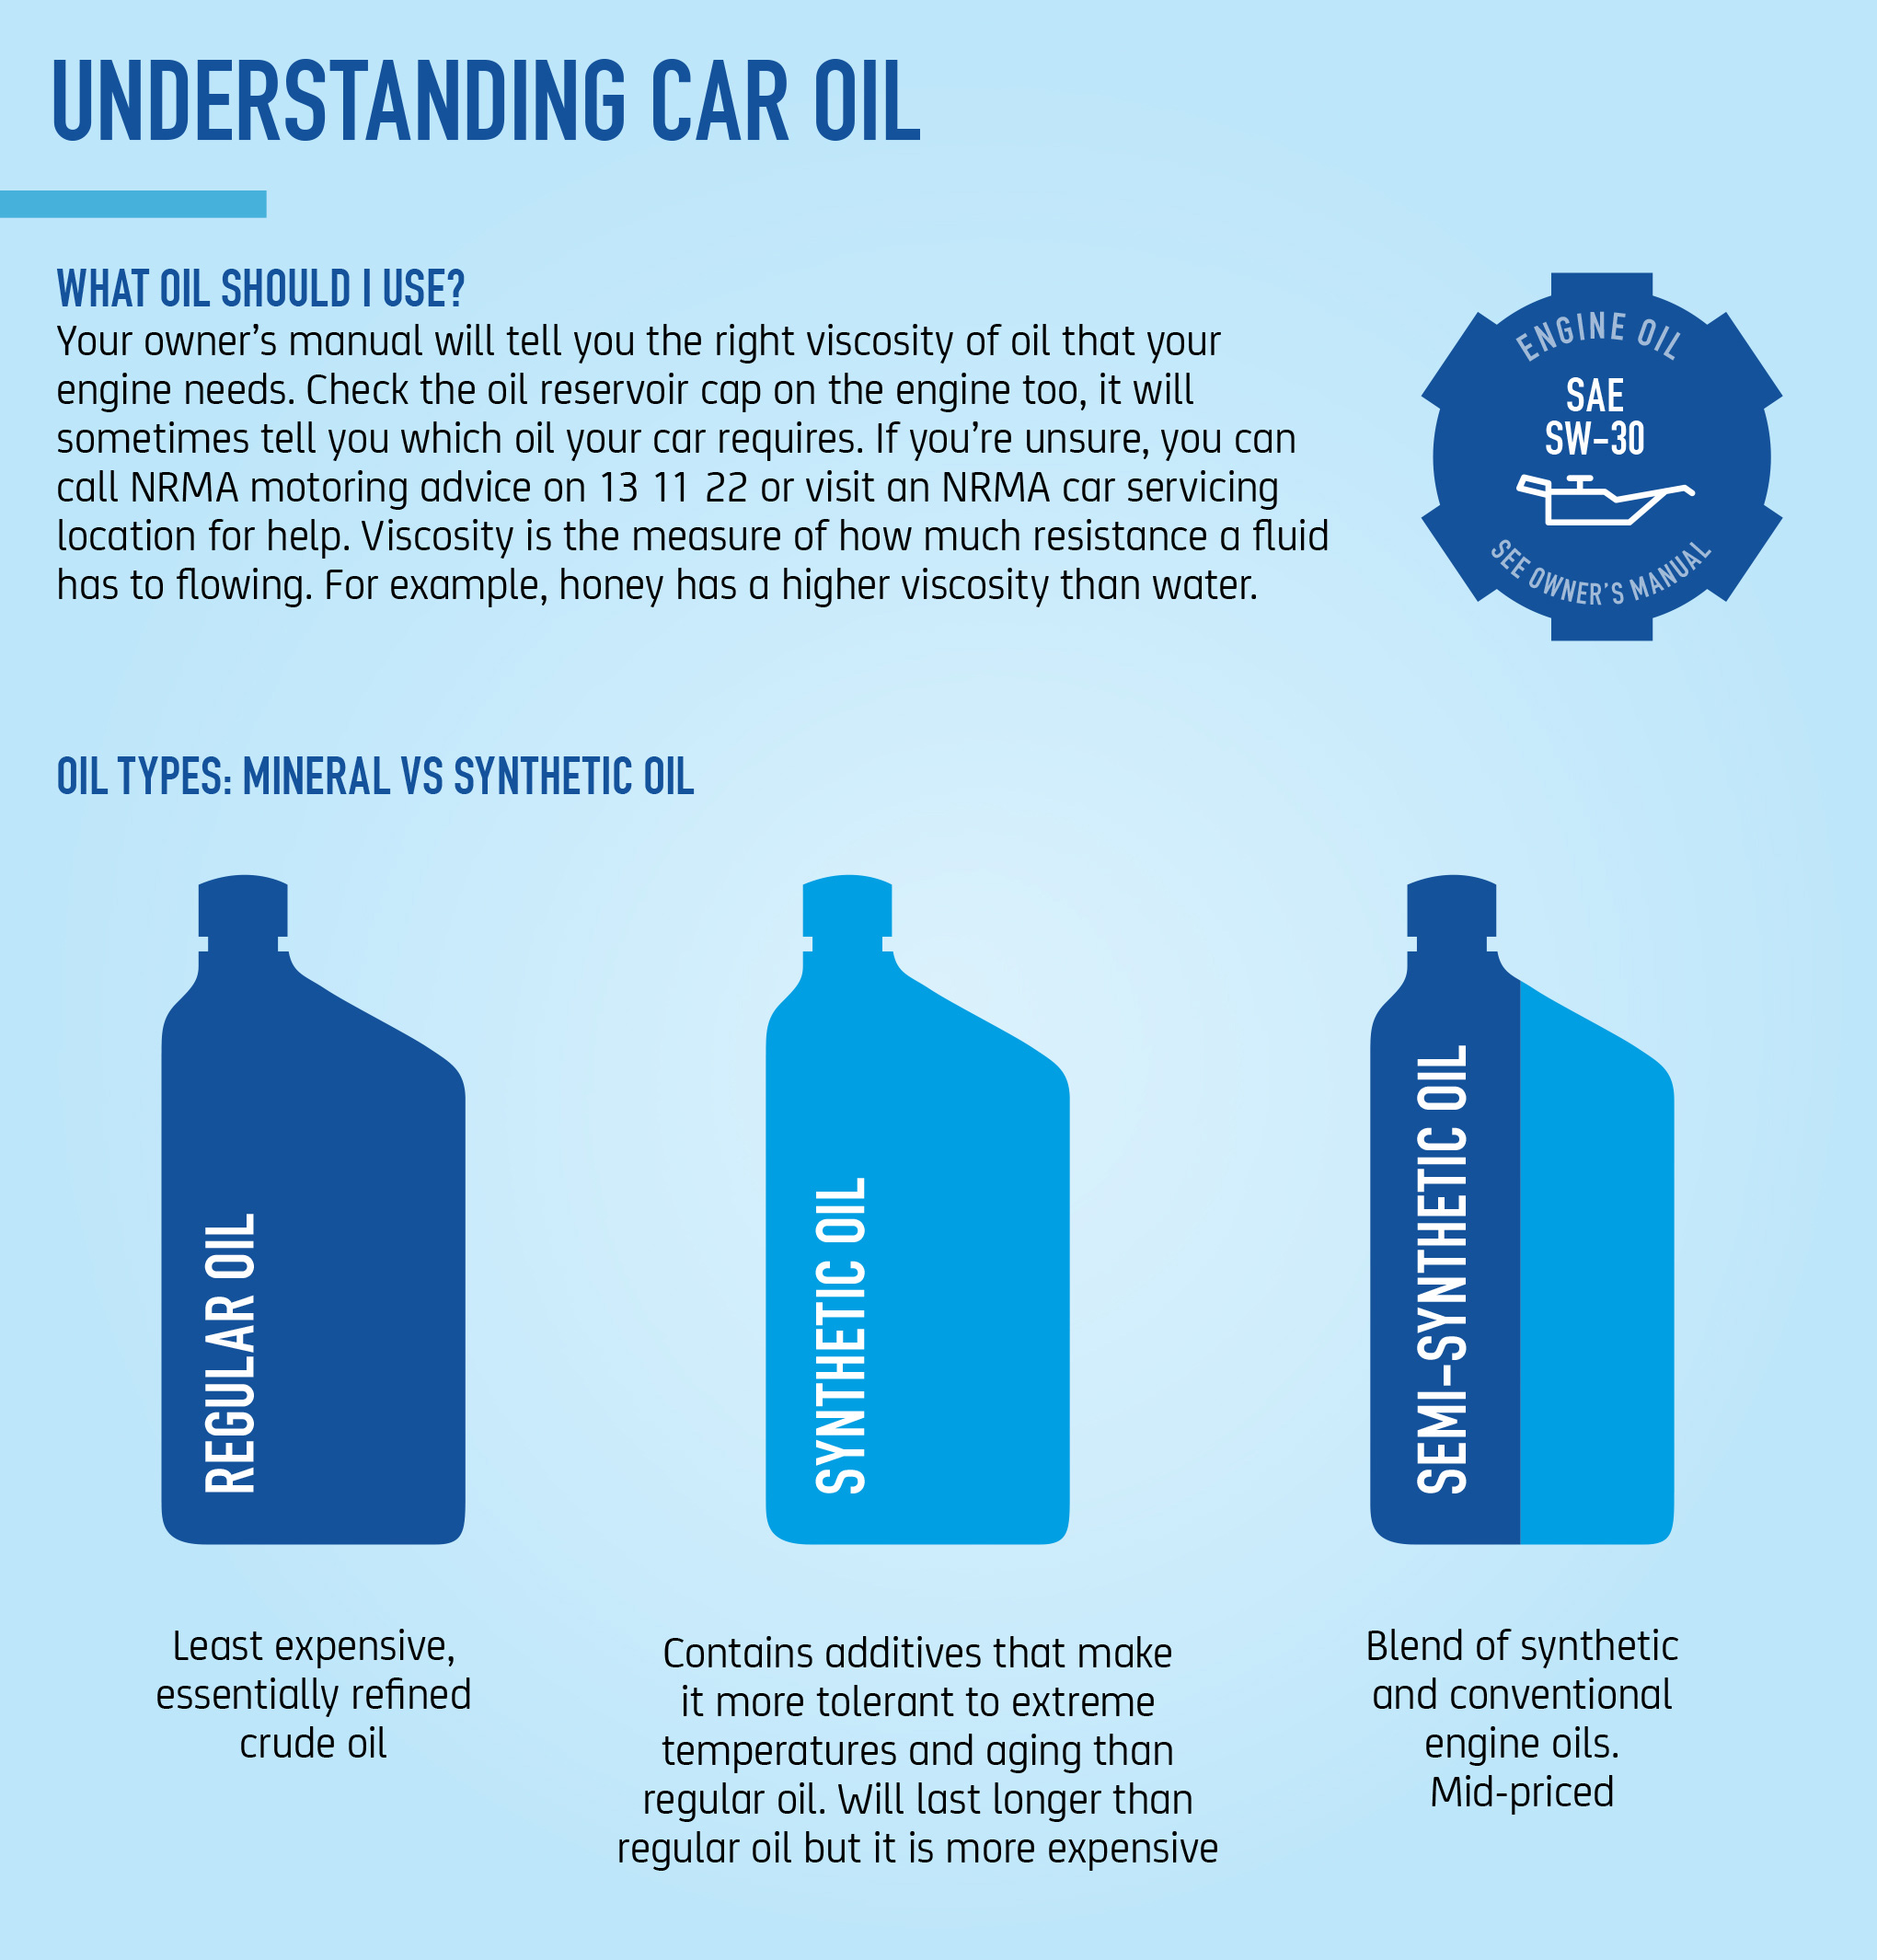 The difference between mineral and synthetic oils